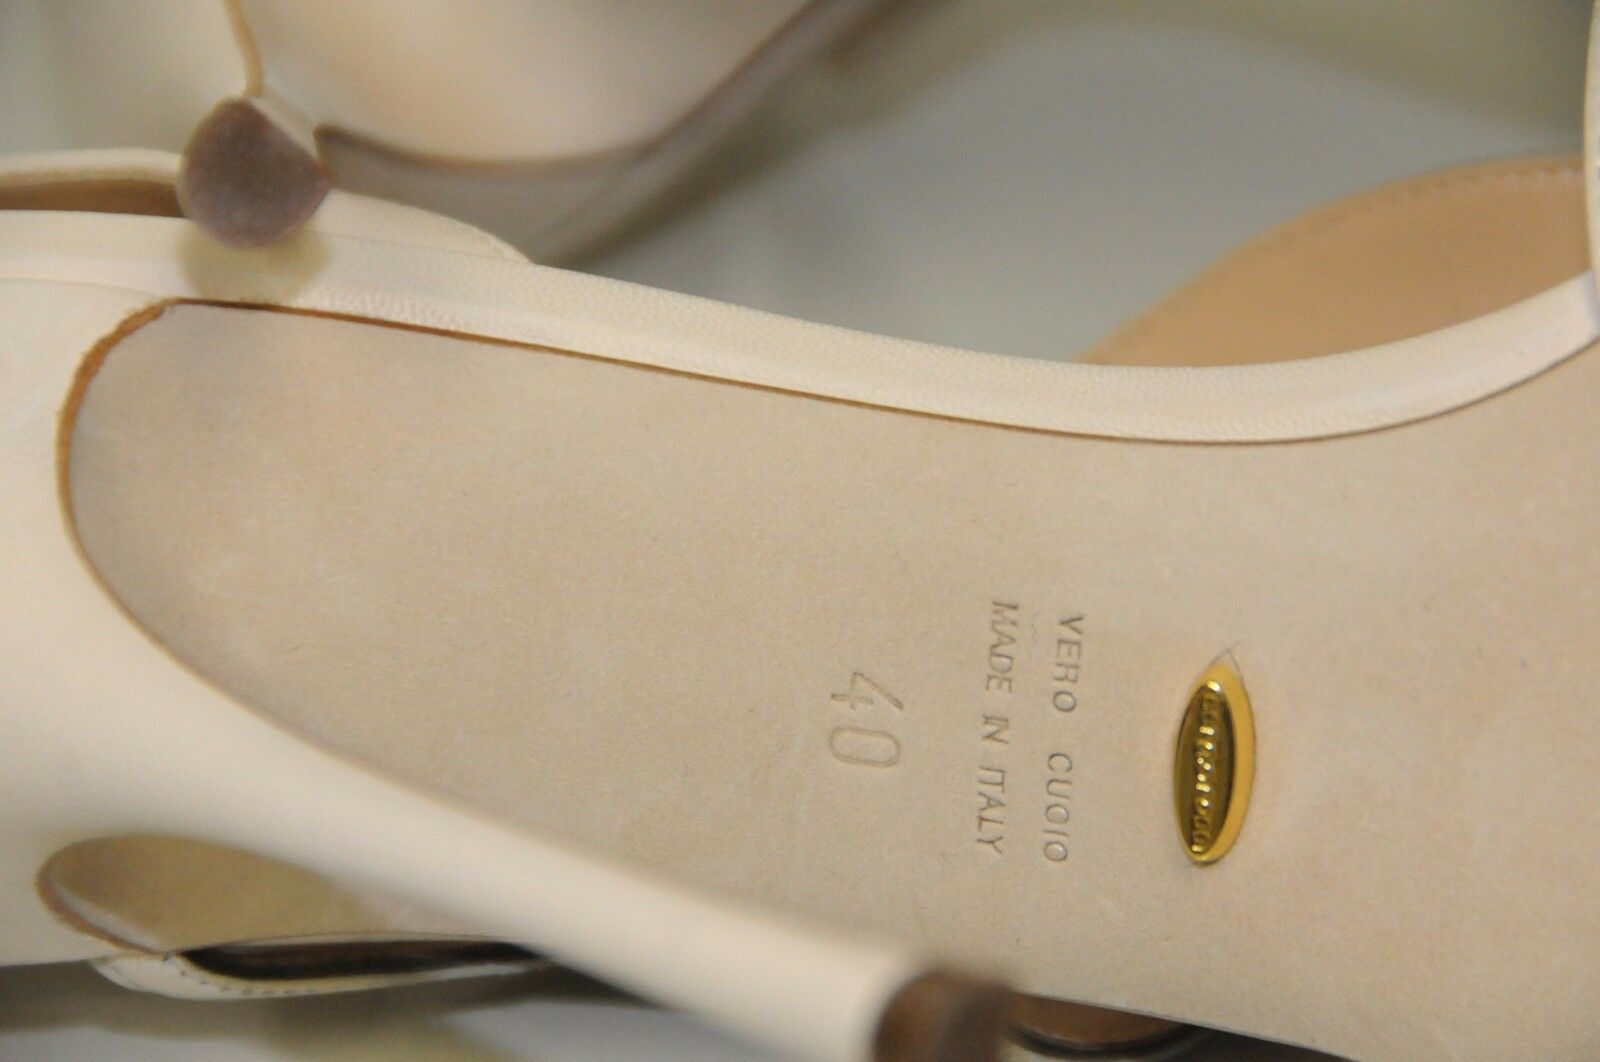 985 985 985 New Sergio Rossi NUDE Cream or Flora leather Sandals chaussures 40 wedding 25d55d